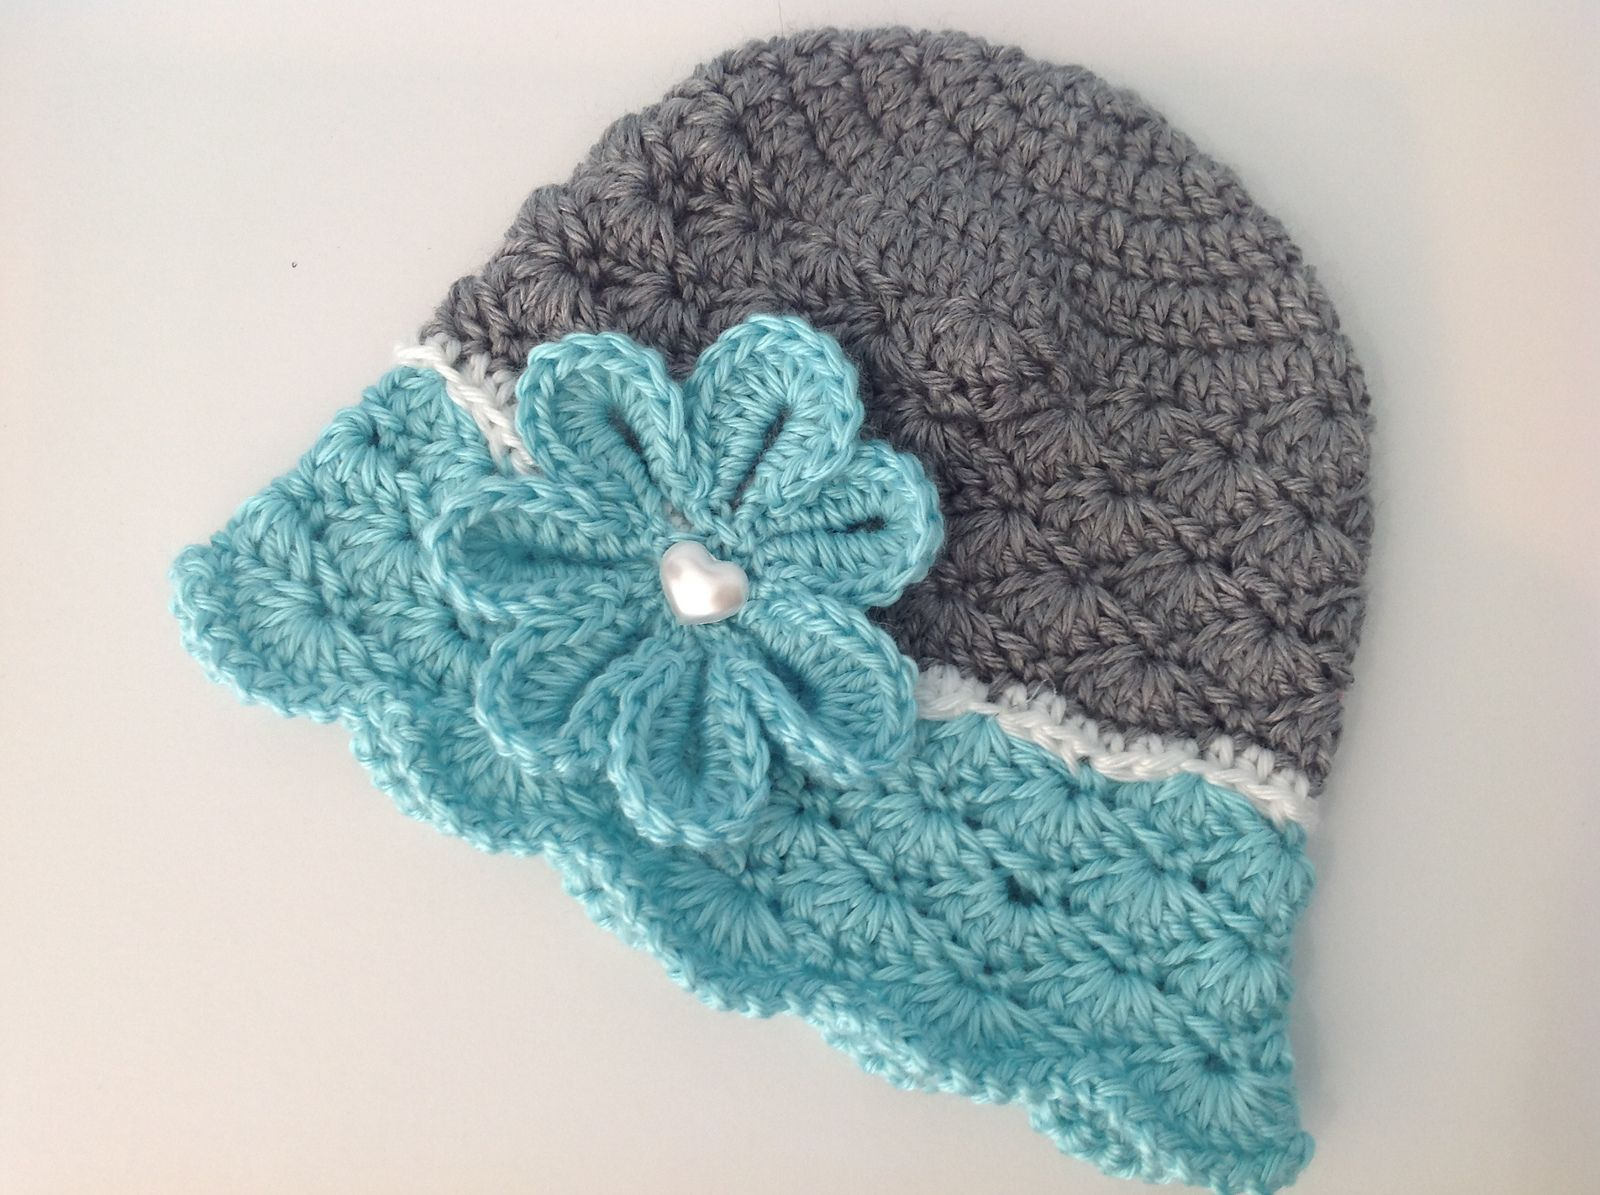 Flowered shells hat pattern by melissa r m frank ravelry flowered shells hat by melissa r m frank purchased crochet pattern adult and child sizes bankloansurffo Image collections